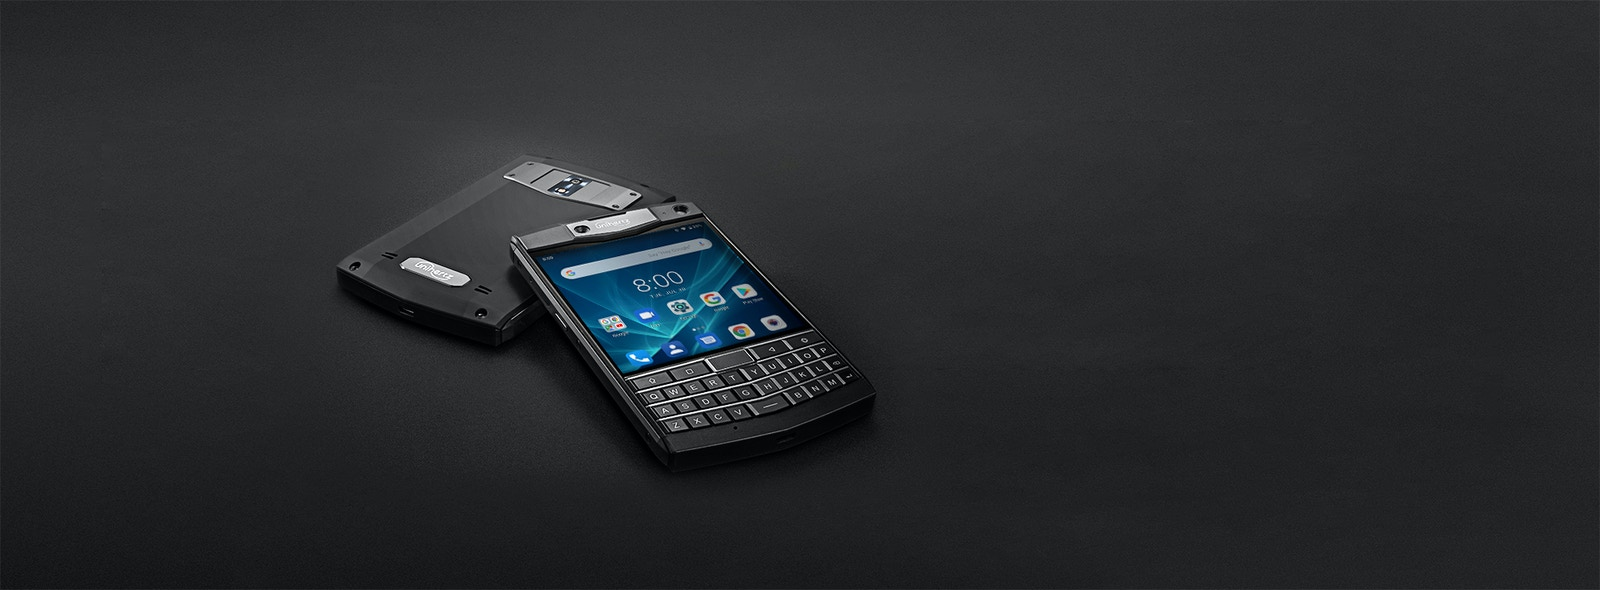 Update 6: Thank you - We Made It!! · Titan, Unihertz Rugged QWERTY Smartphone